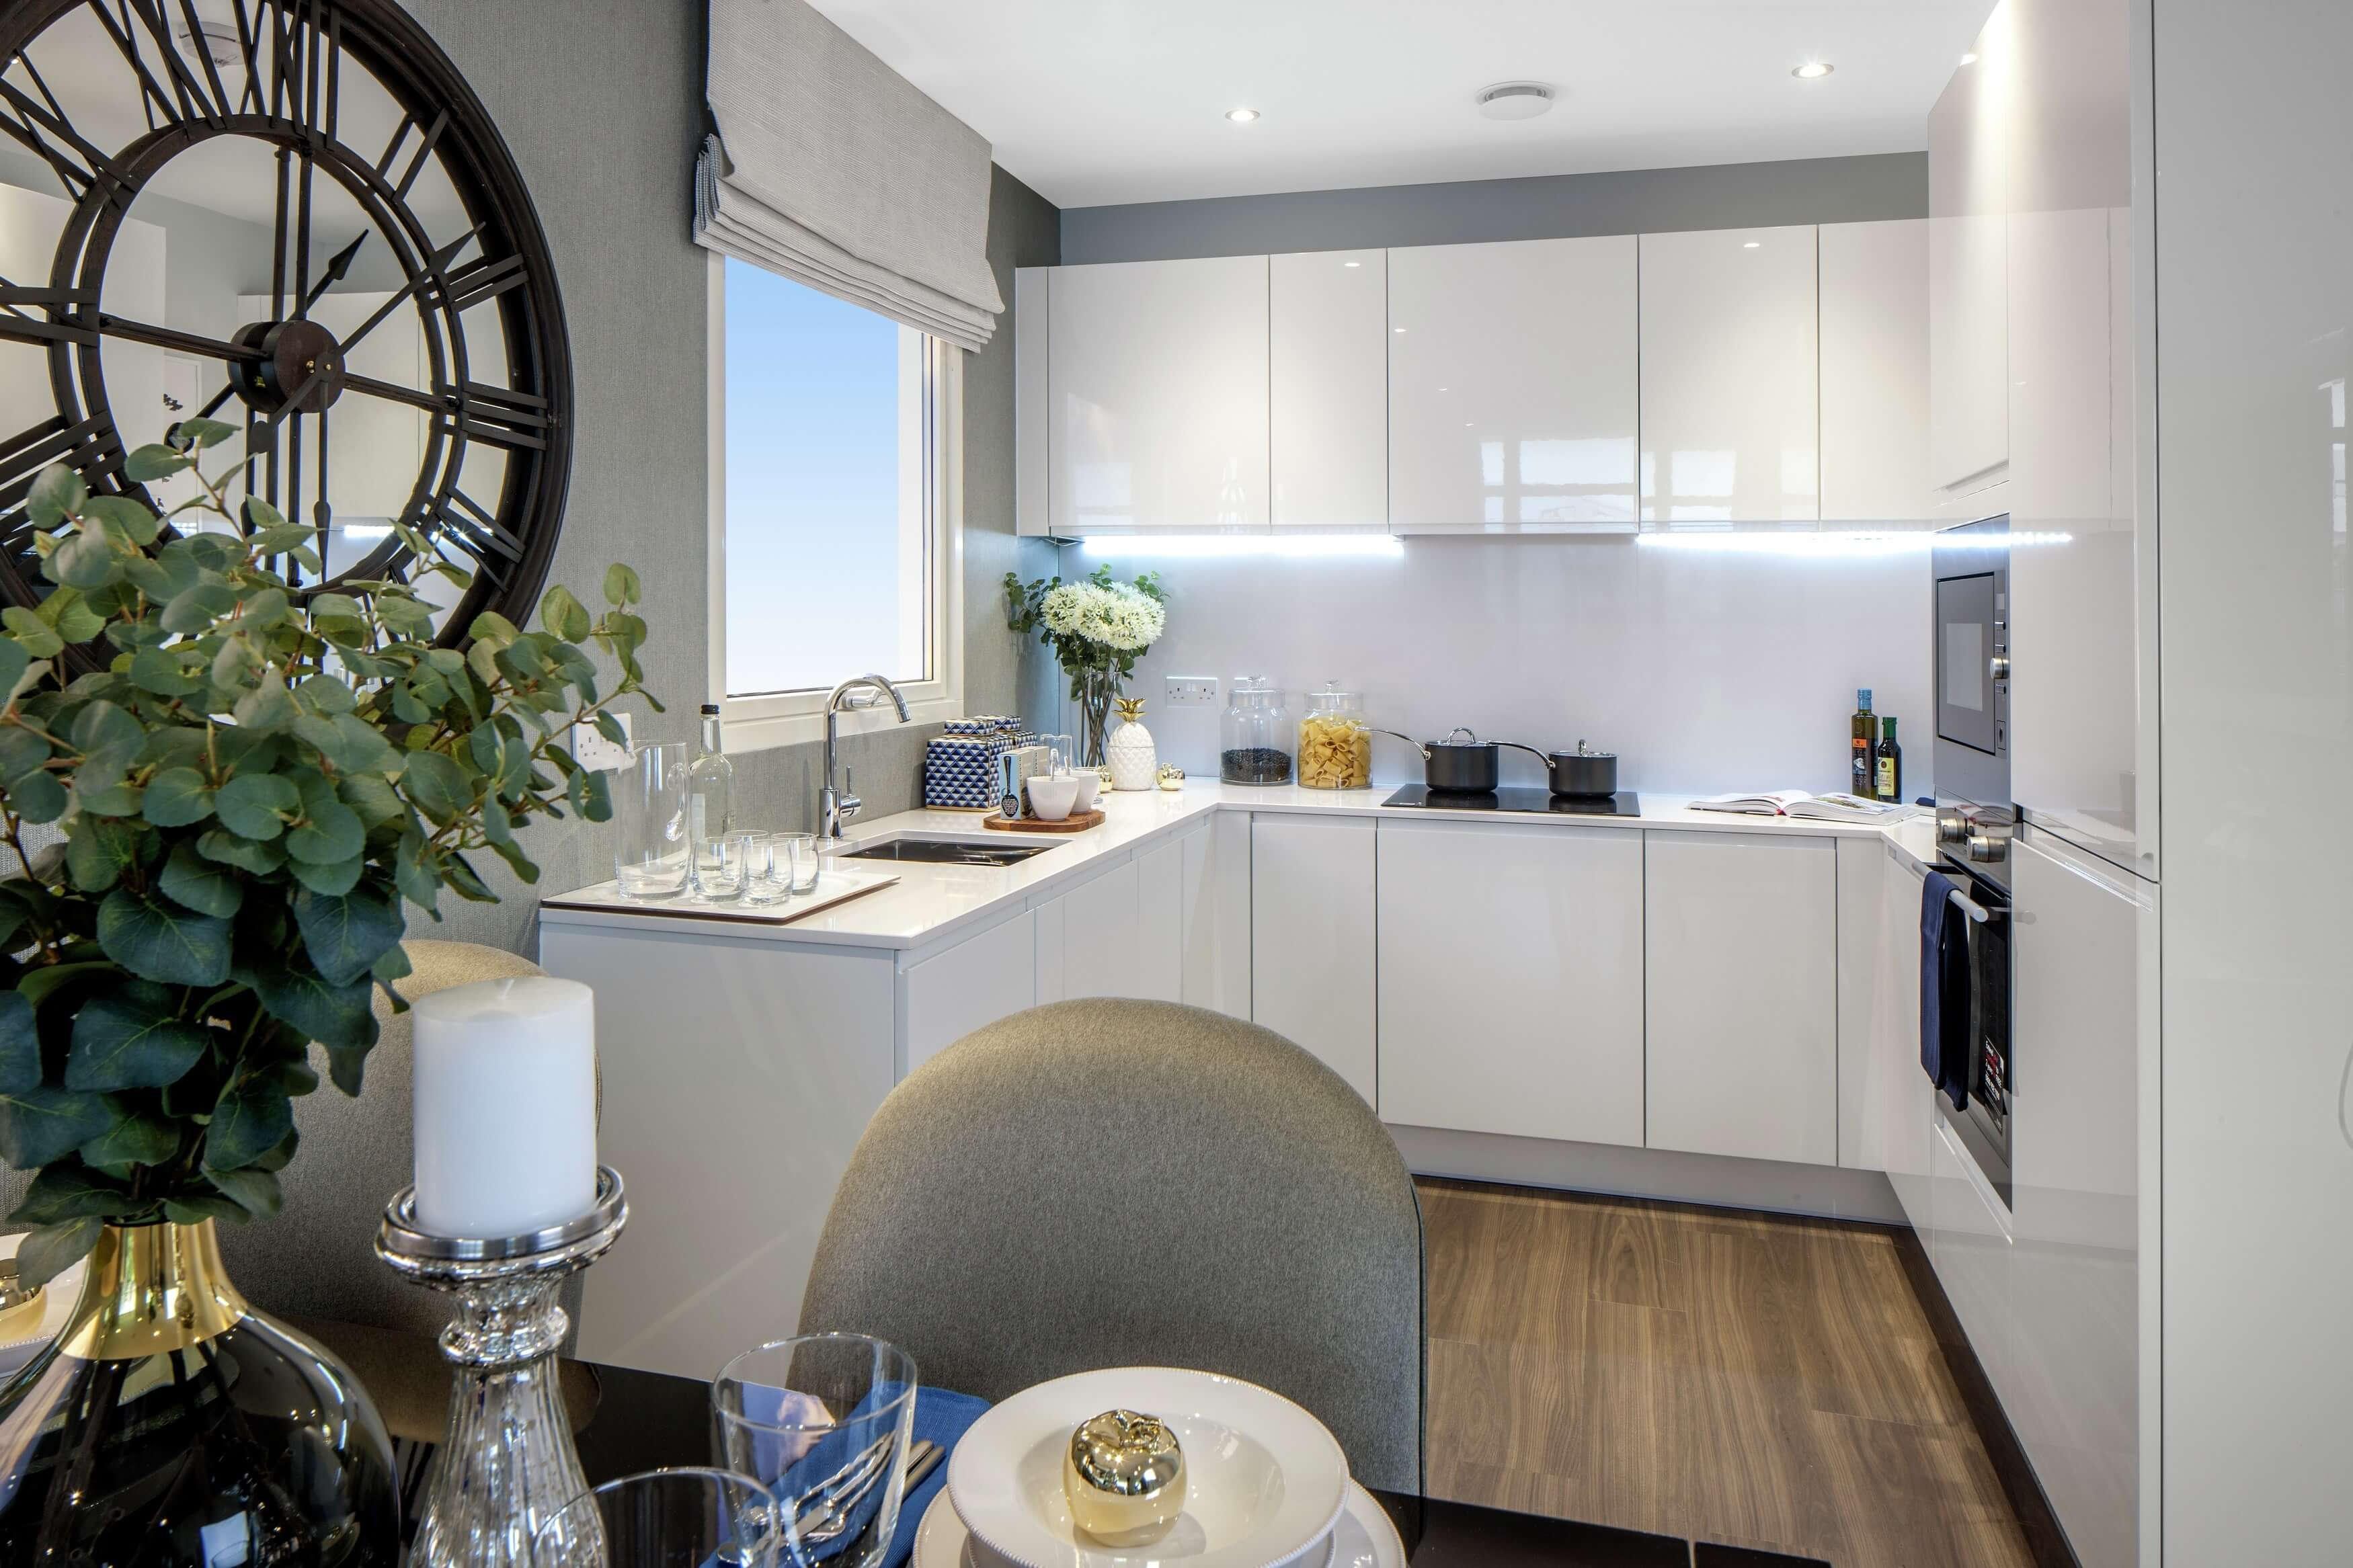 Show Home Room By Room London Square Isleworth - Home design show london